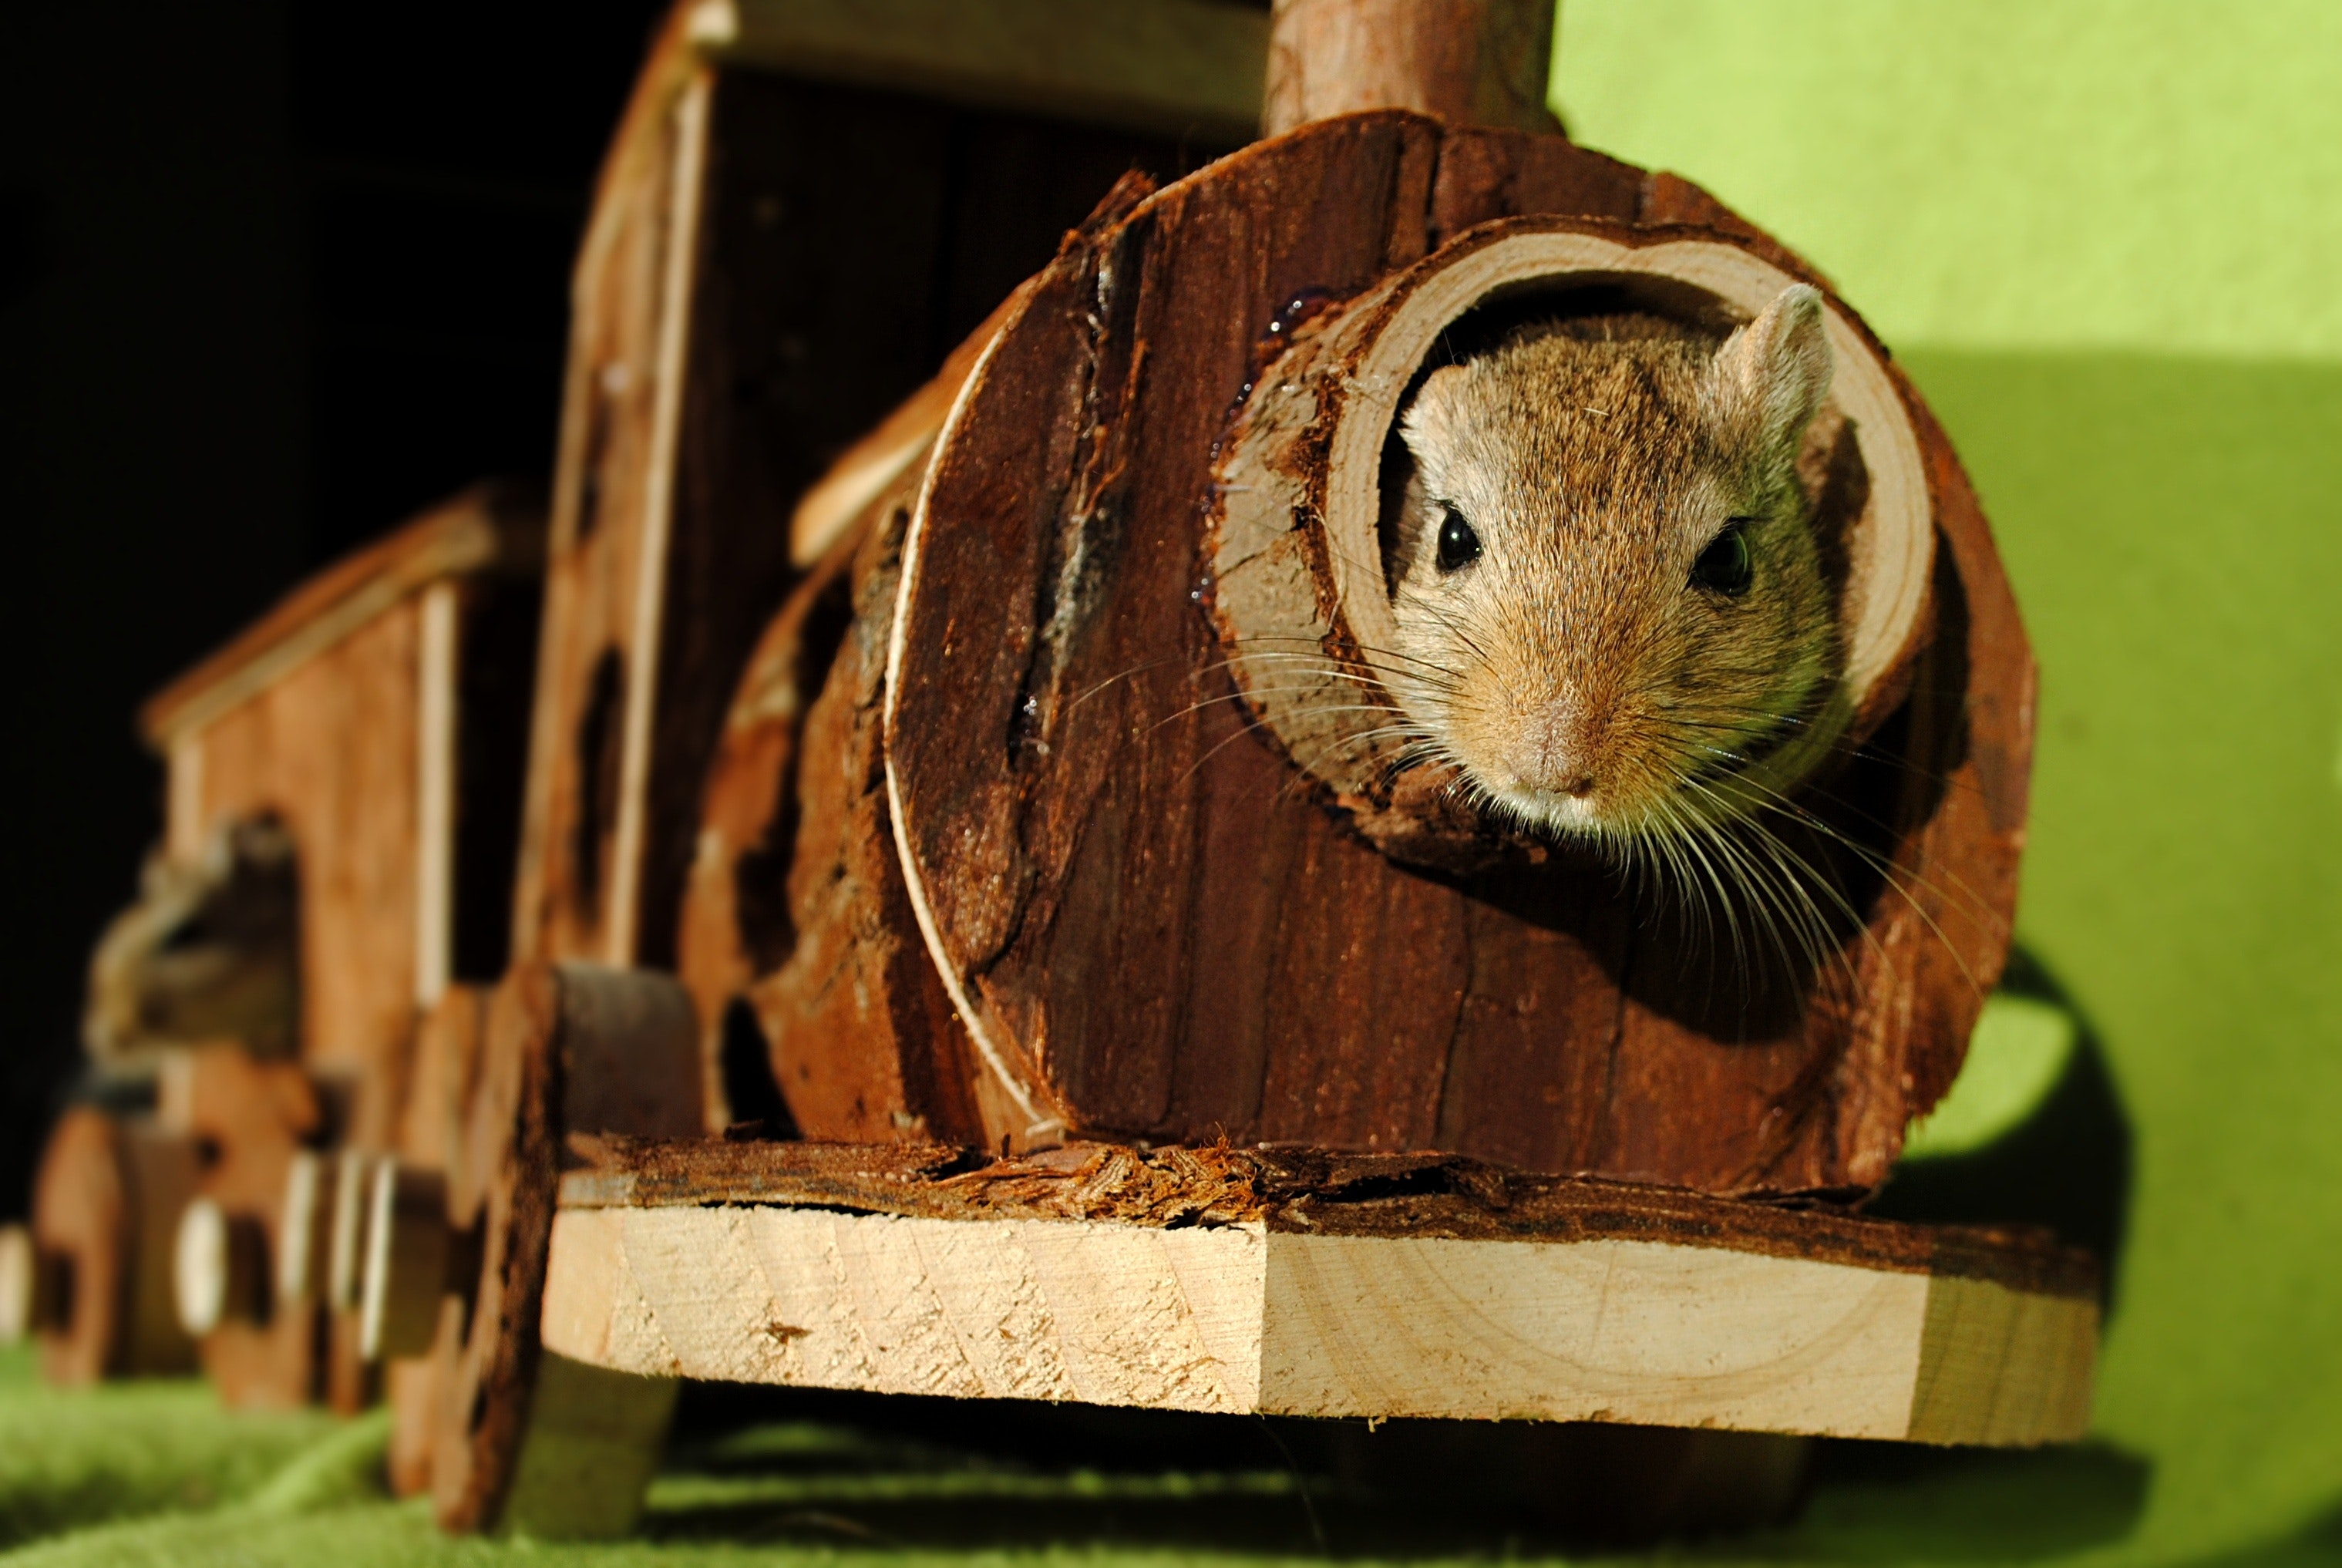 Brown squirrel inside of brown wooden train miniature photo